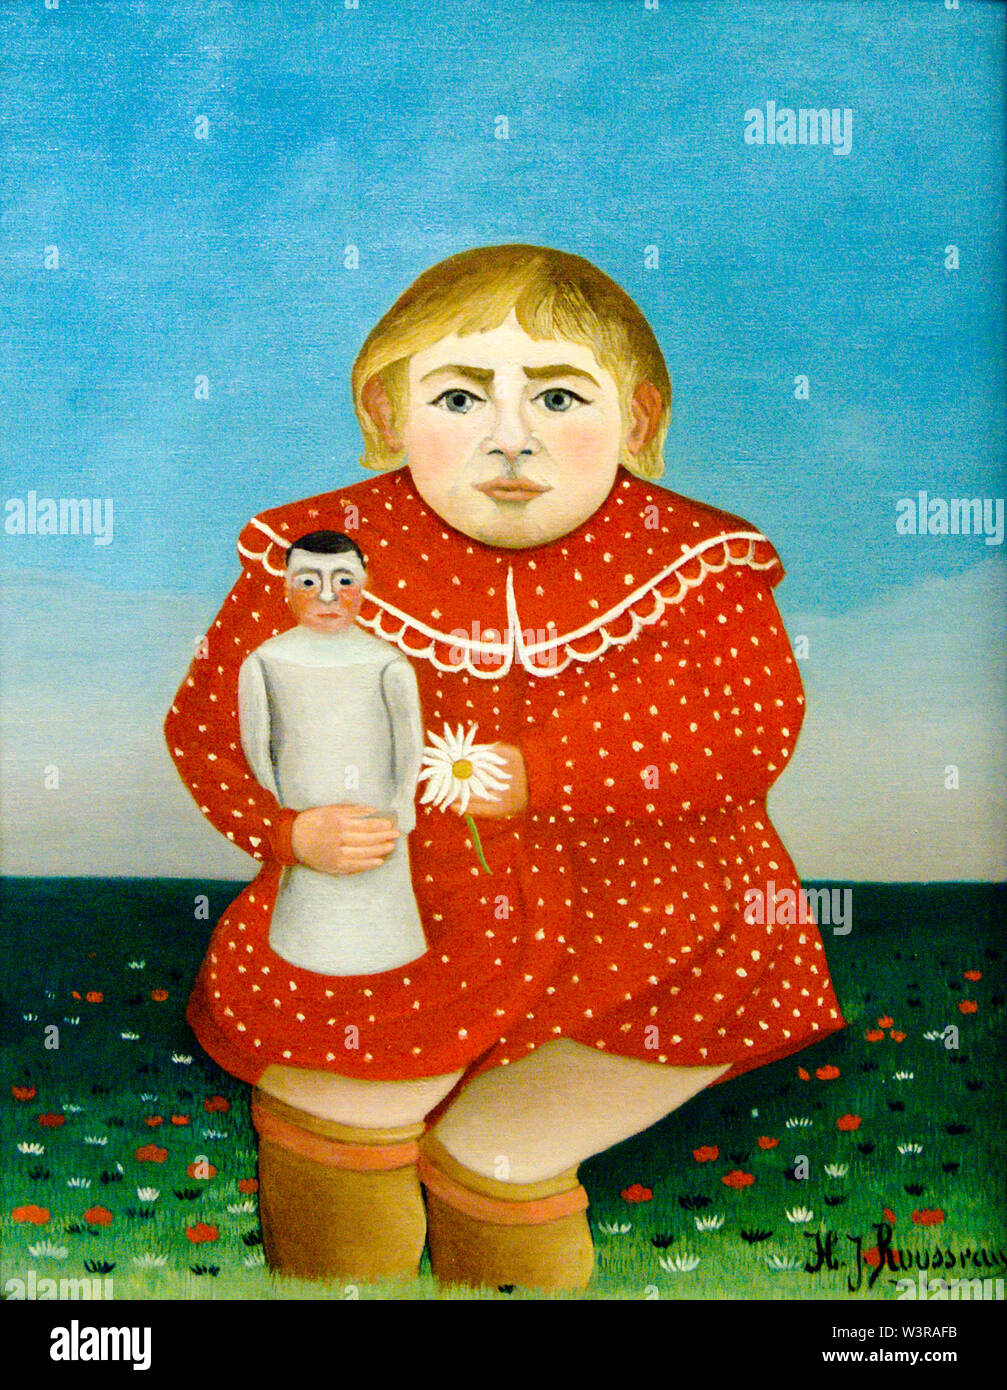 Henri Rousseau, Child with a doll, portrait painting, 1905 - Stock Image